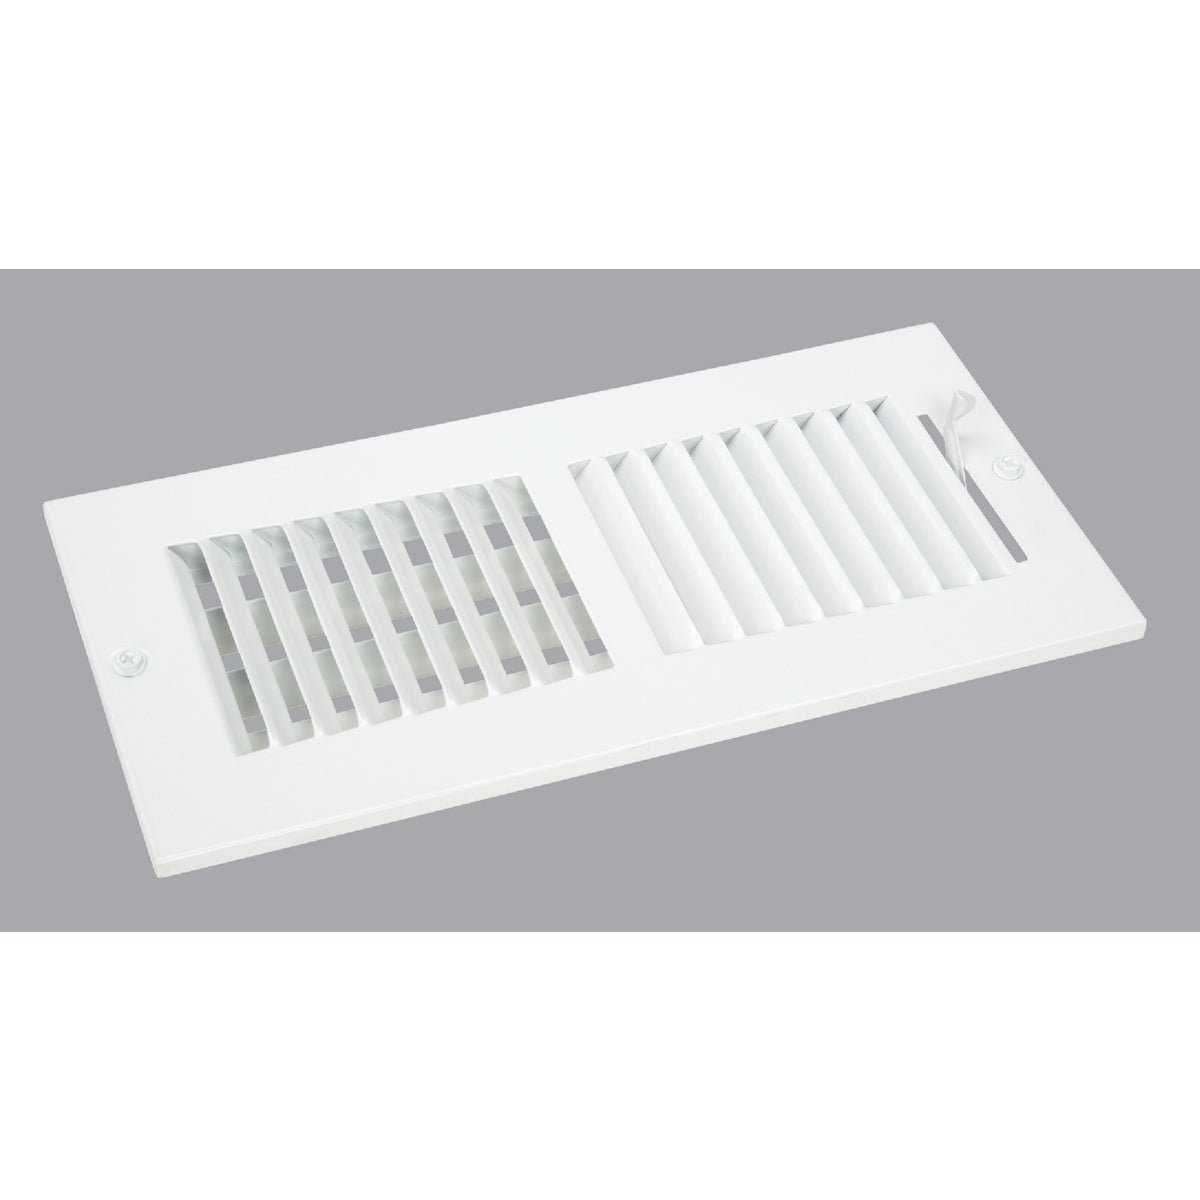 4X10 WHT WALL REGISTER - 2SW1004WH-B by Do it Best